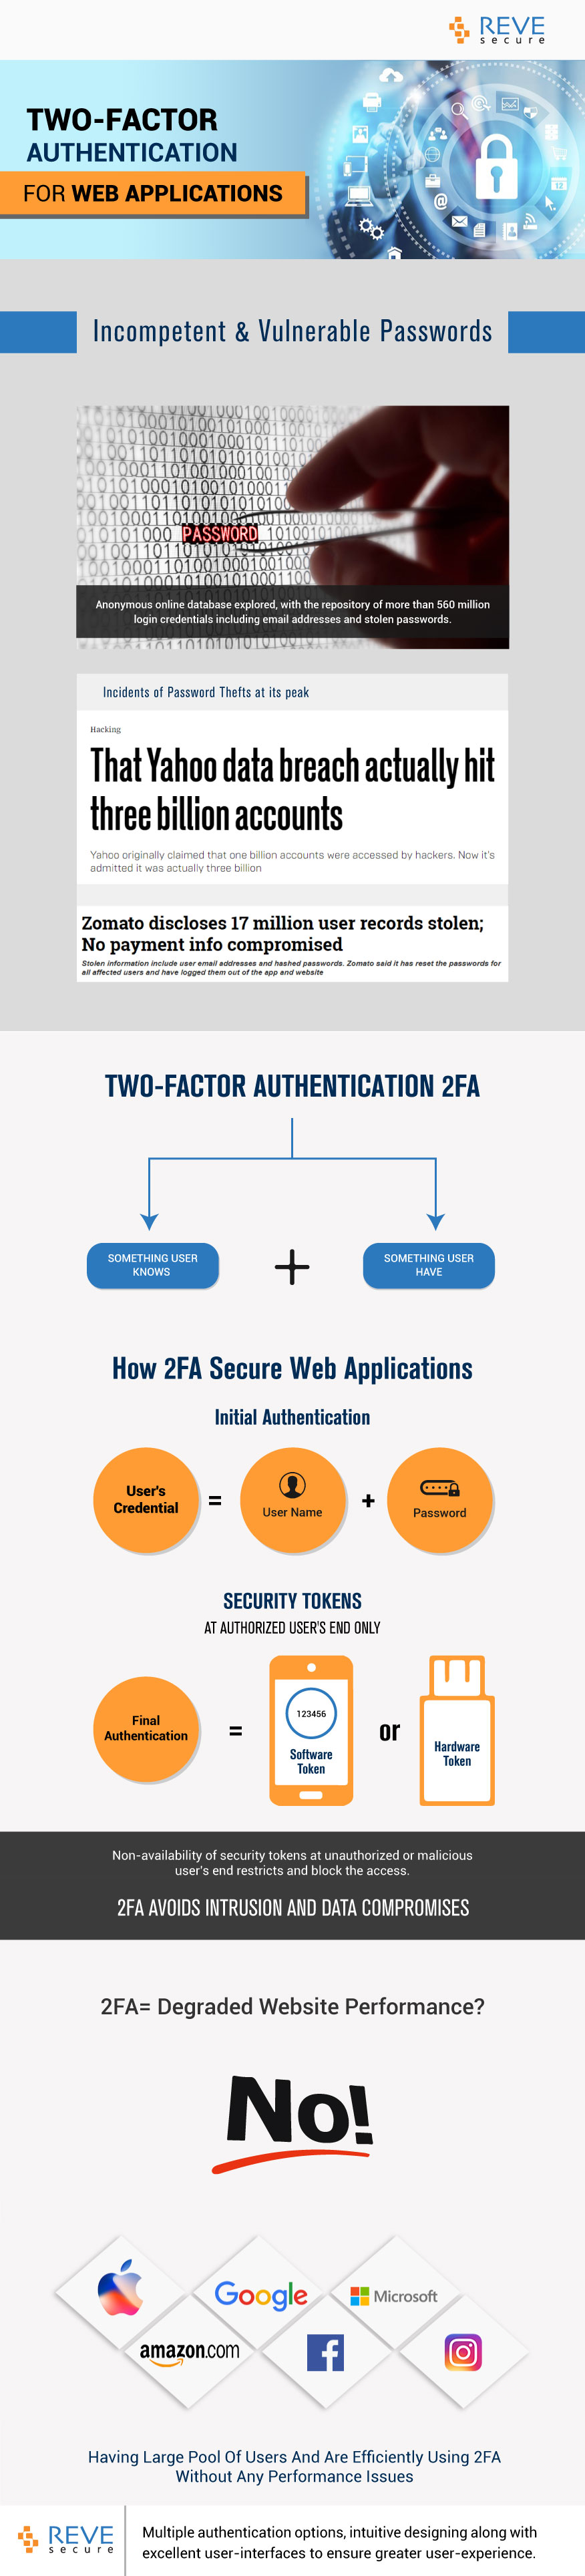 2FA for Web applications-infograhic